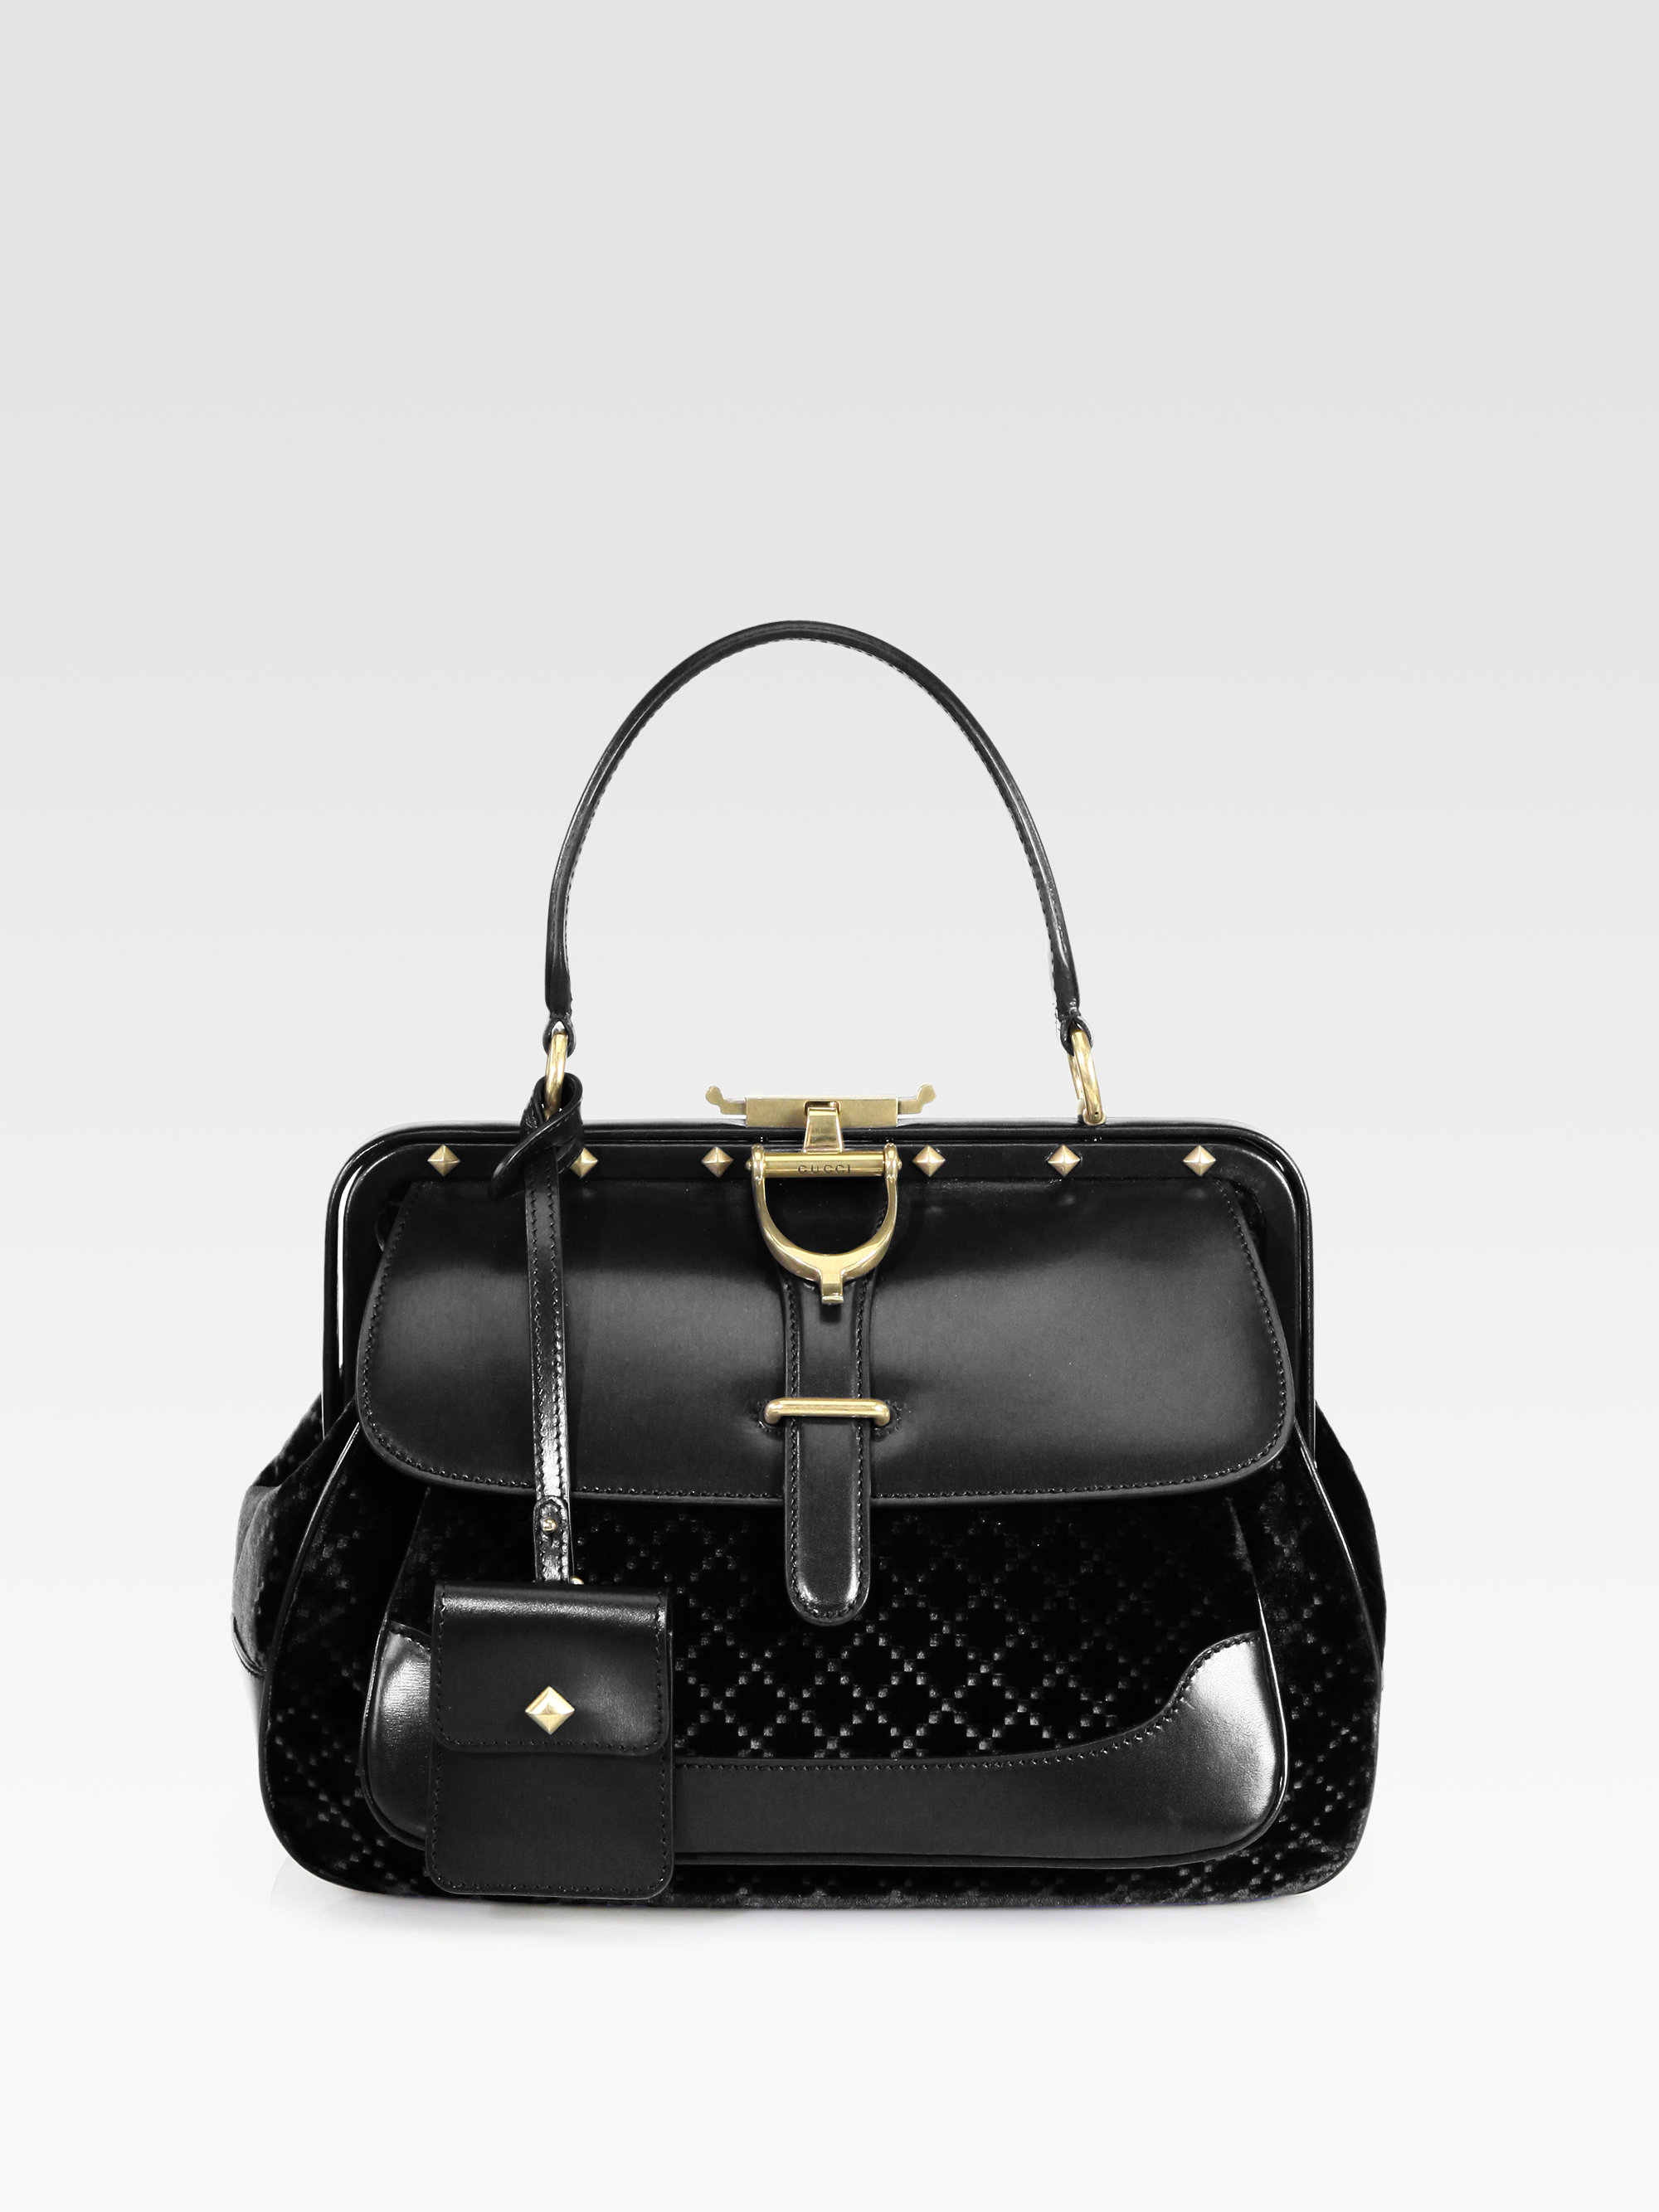 e9bc1b1f5a33 Gallery. Previously sold at: Saks Fifth Avenue · Women's Gucci Stirrup